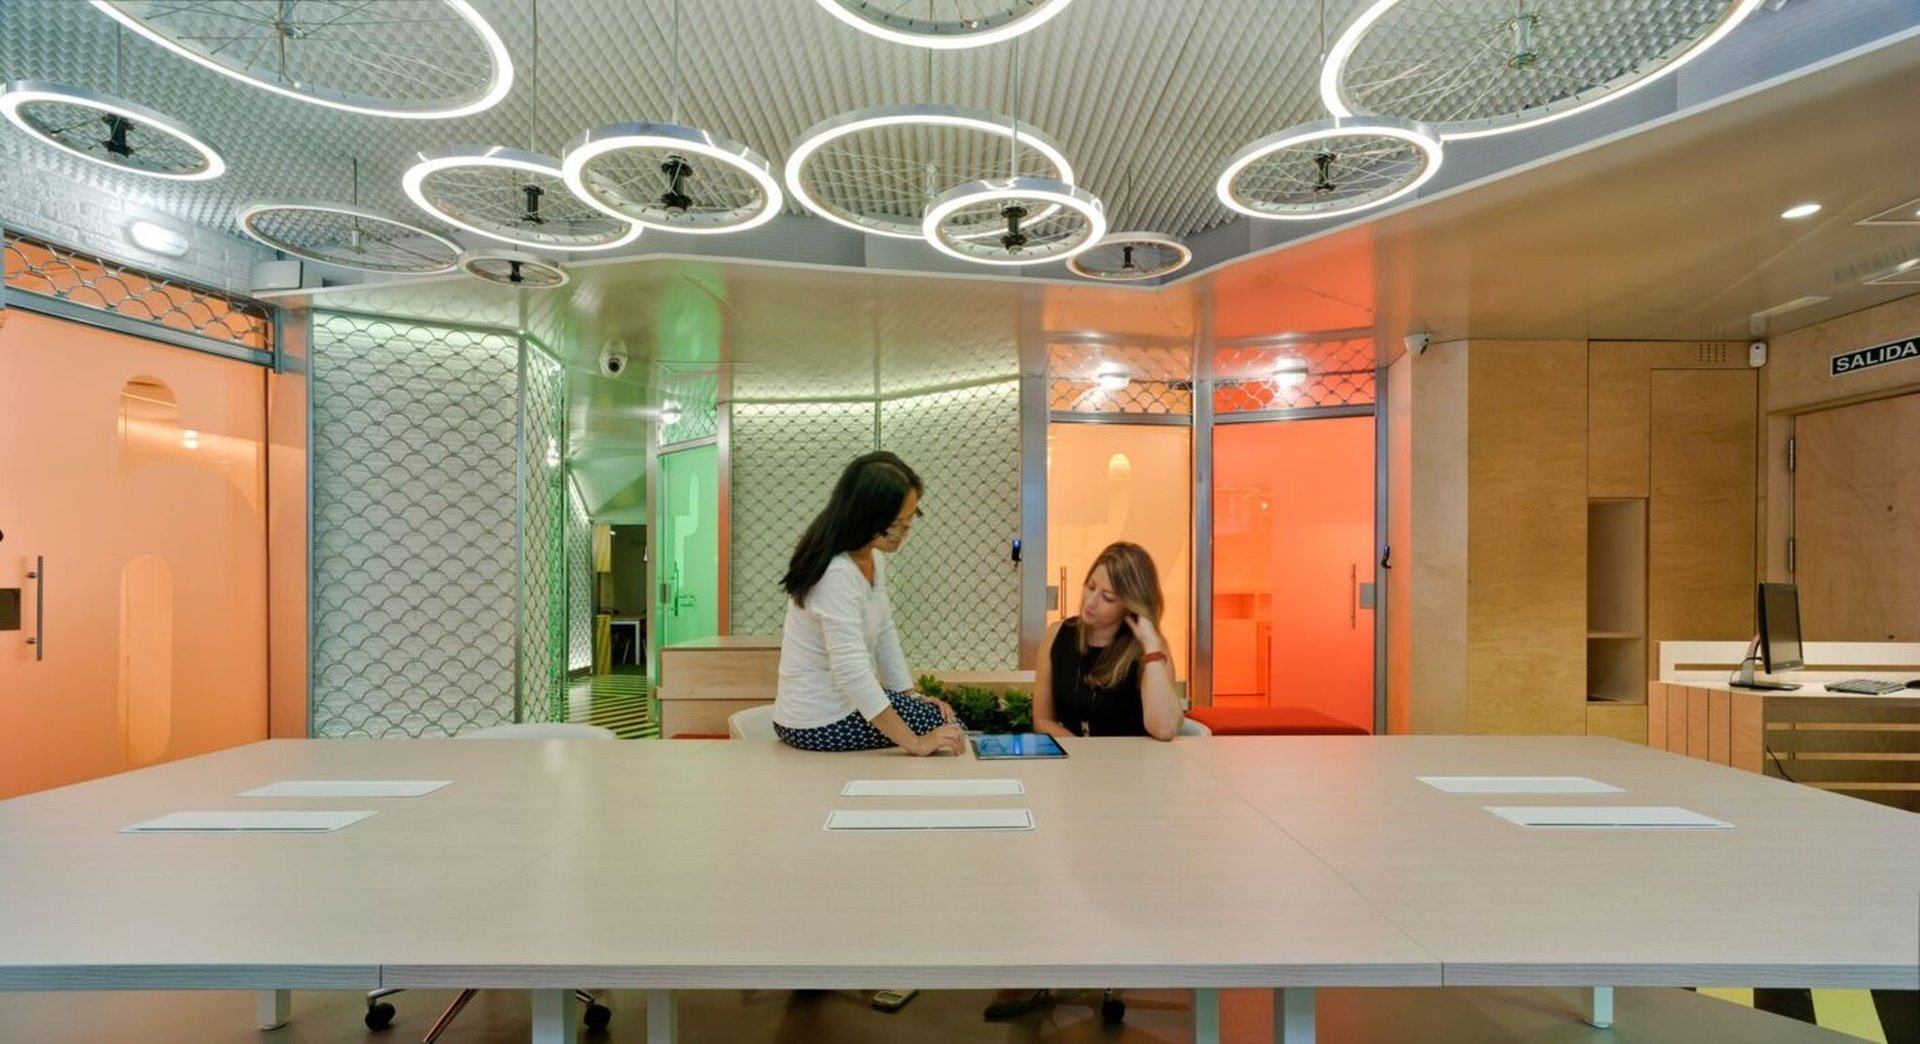 Madrid seminar rooms Coworking space The Underground Den S.L. image 0